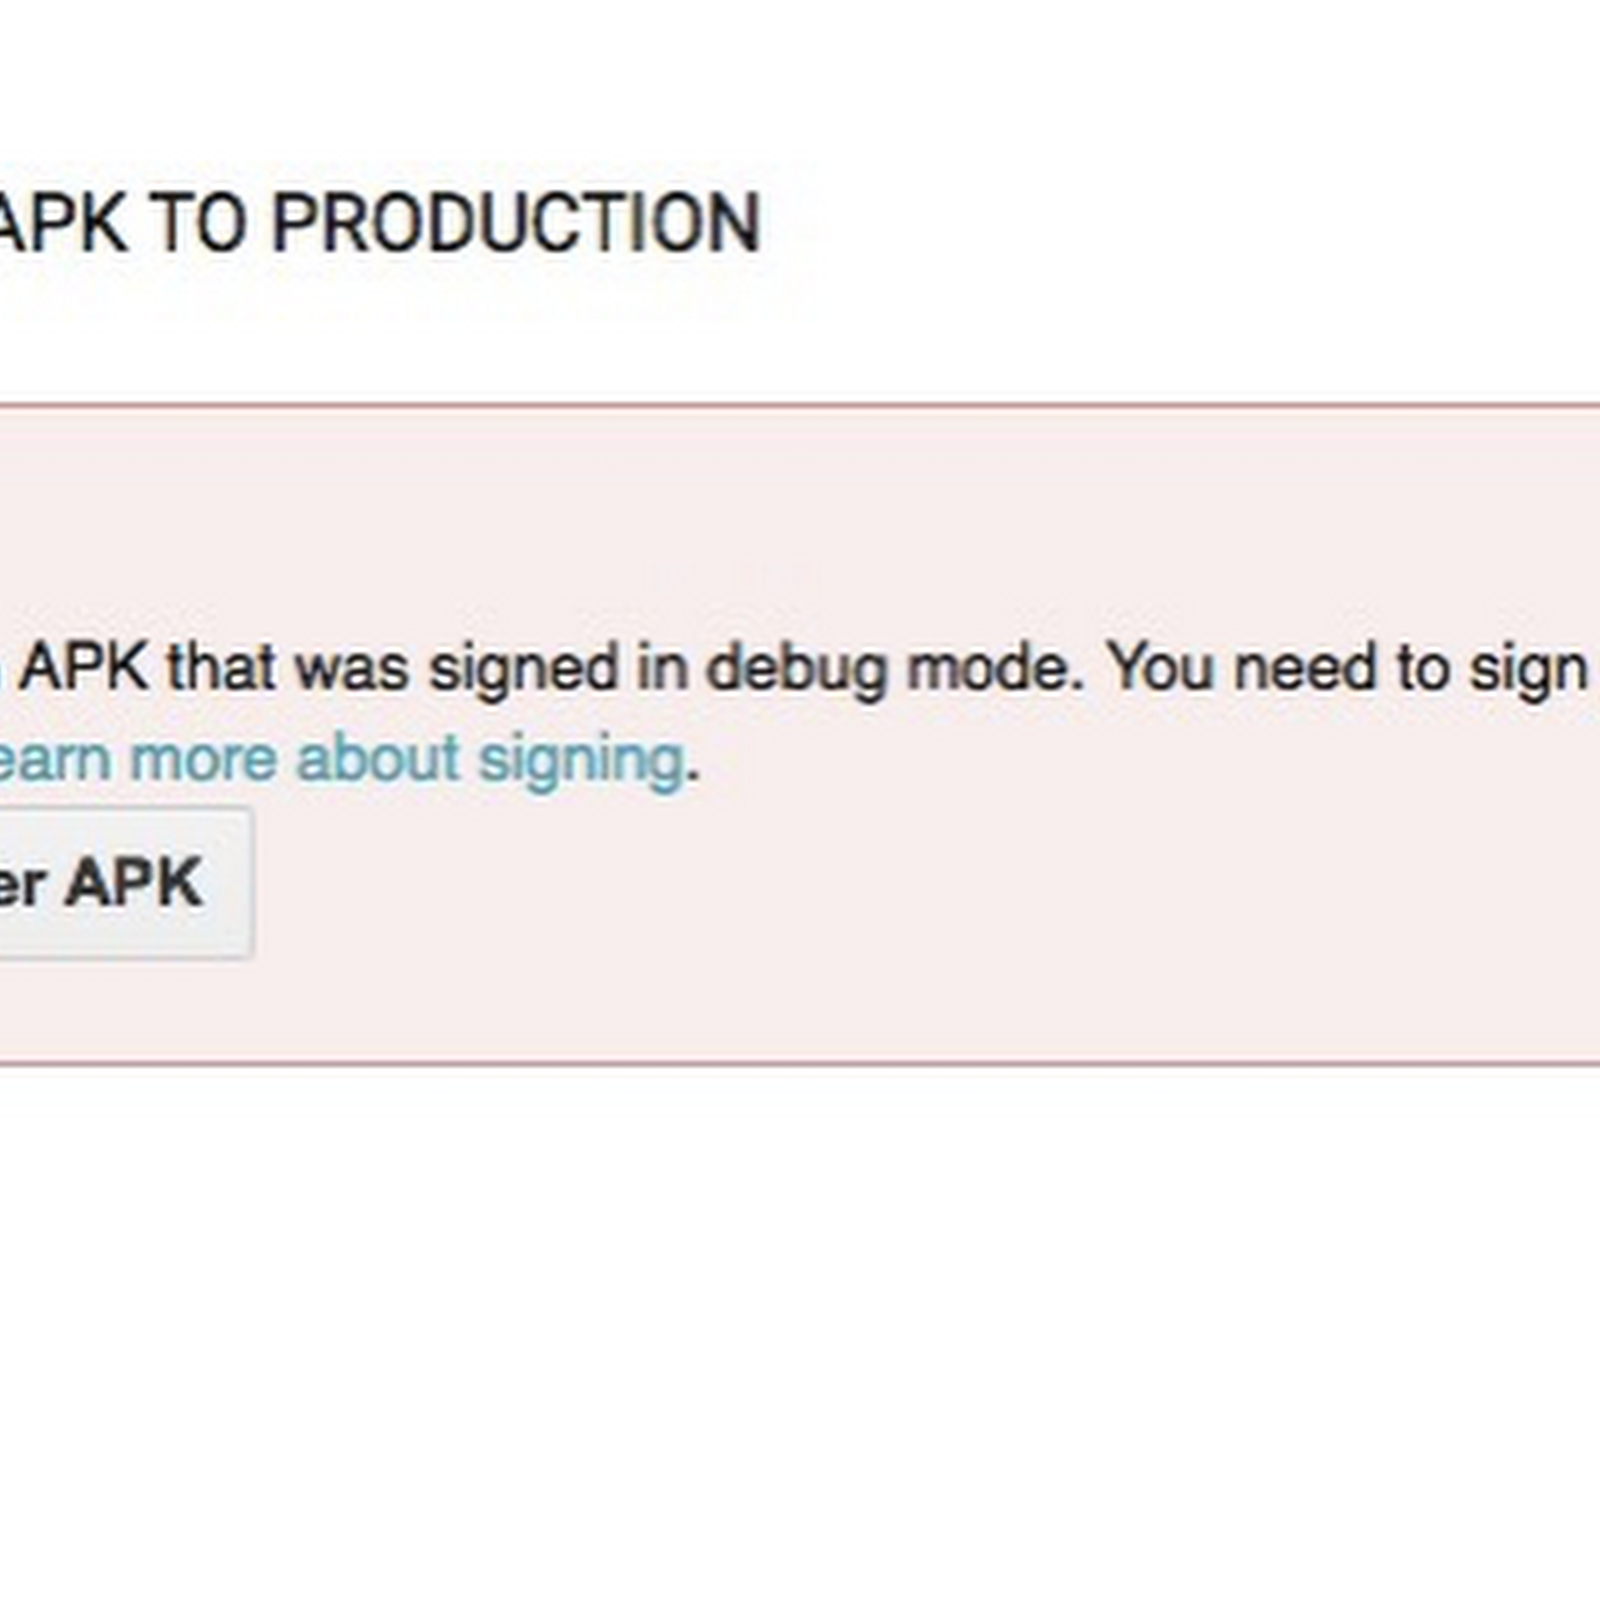 Unity3d error message: You uploaded an APK that was signed in debug mode